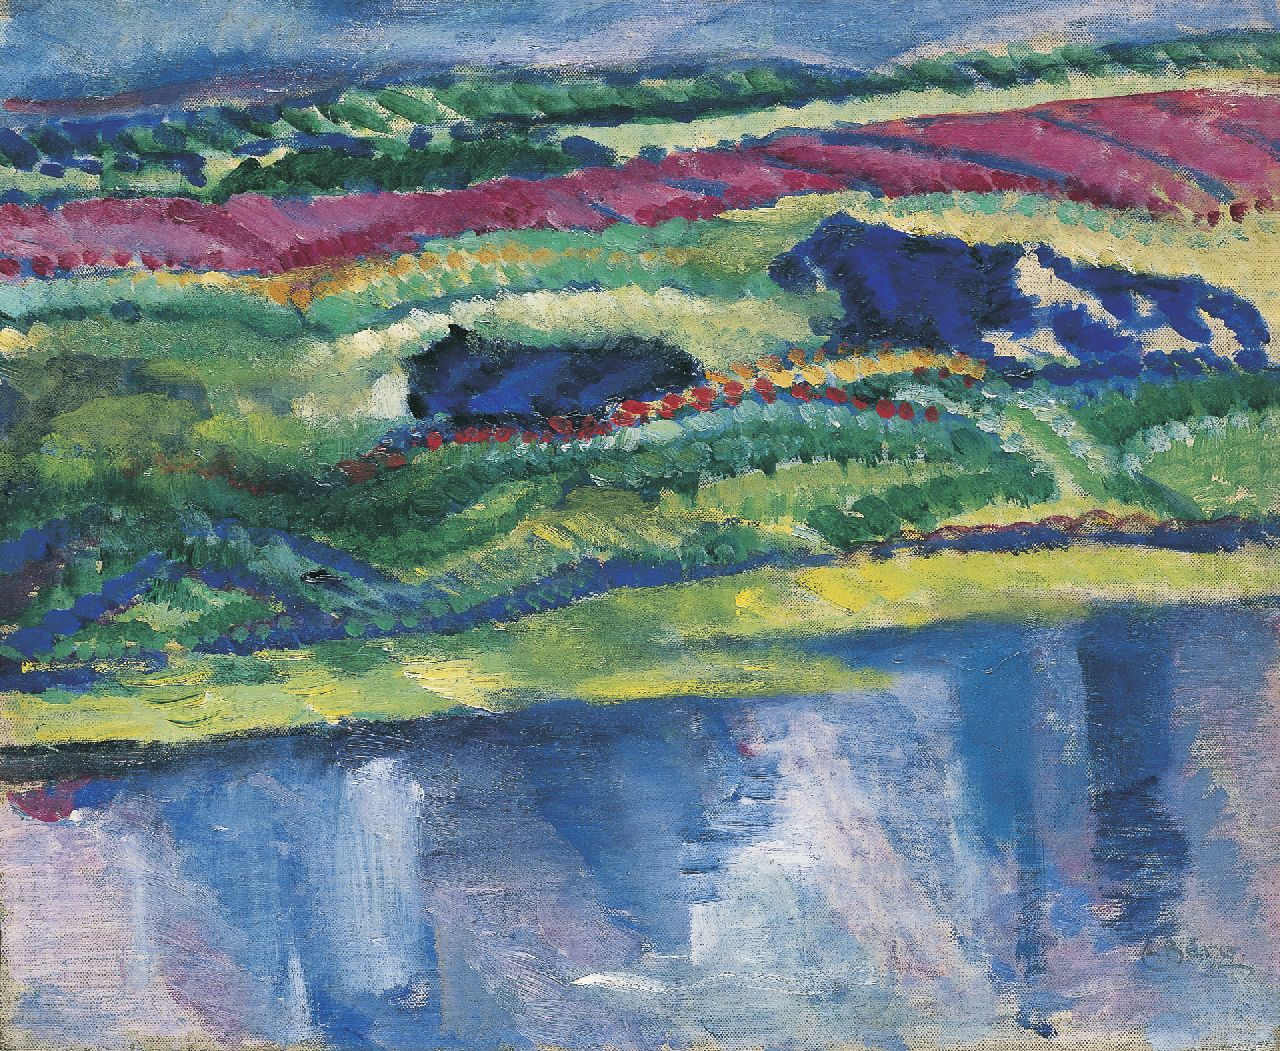 Berg E.  | Else Berg, Landscape with cows, oil on canvas laid down on board 40.0 x 48.5 cm, signed l.r. and painted ca. 1911-1912